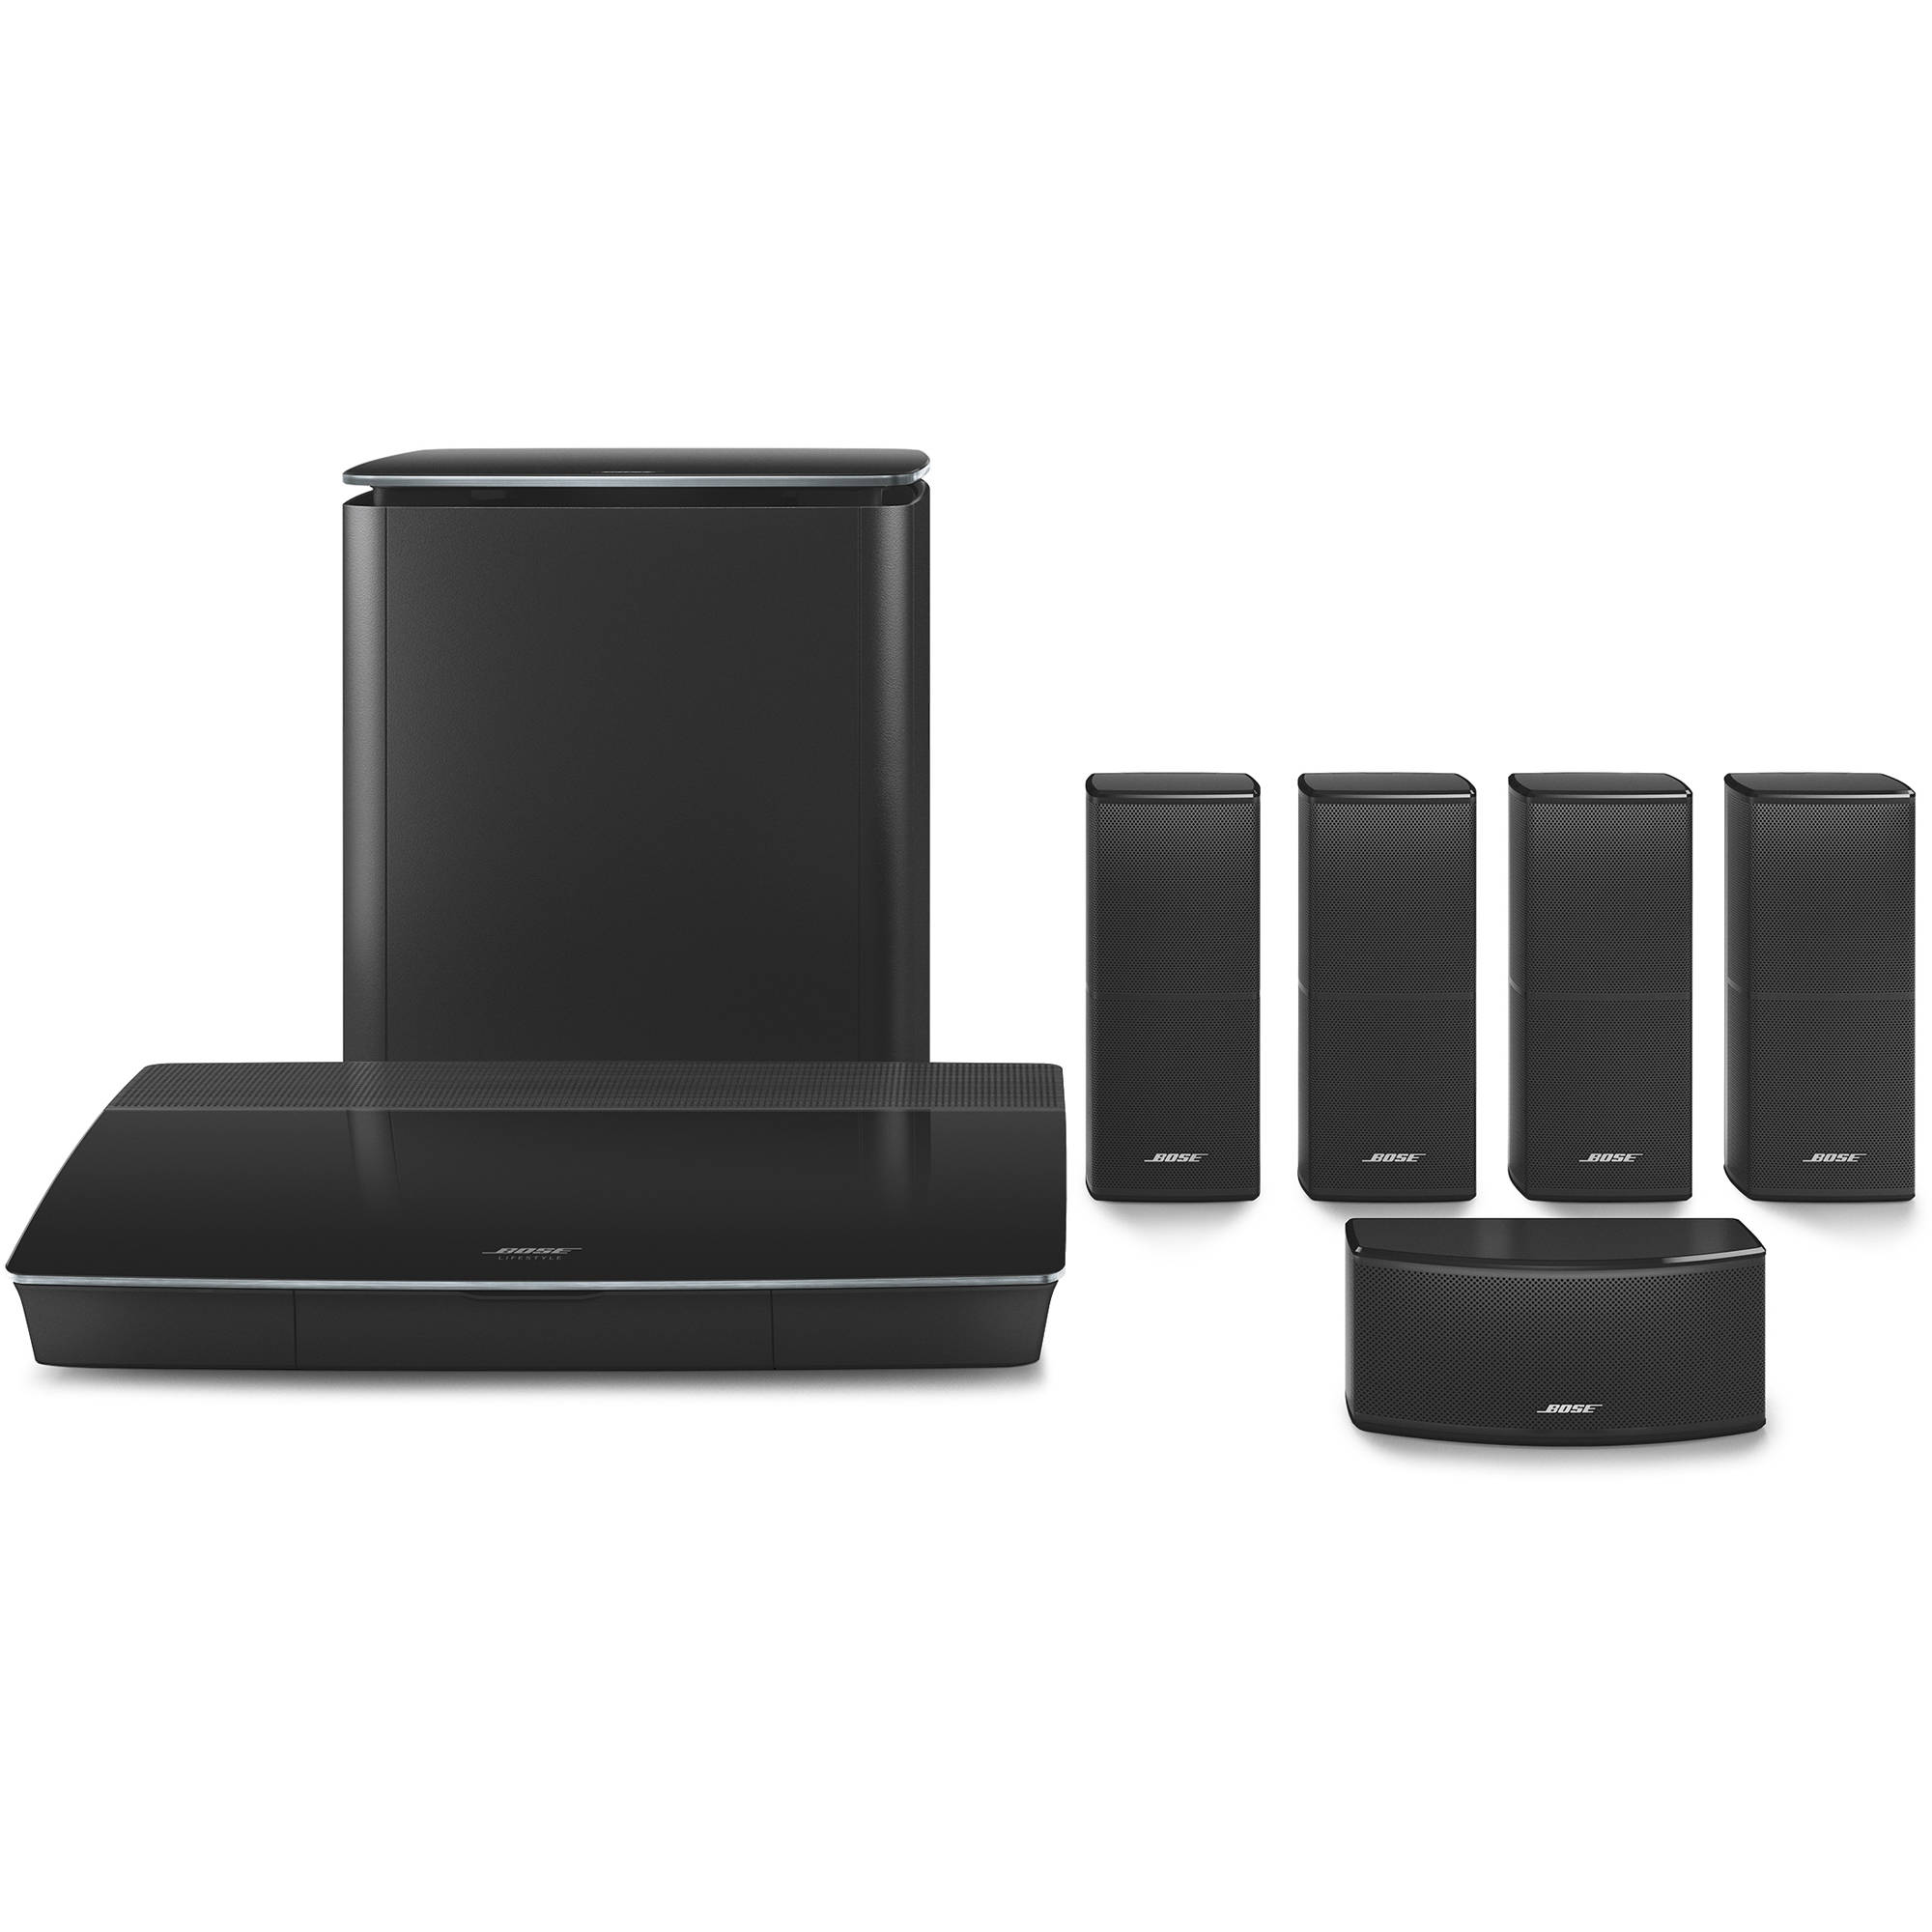 Bose Lifestyle 600 Home Theater System With Jewel 761682 1110 Acoustimass Speaker Wiring Cube Speakers Black